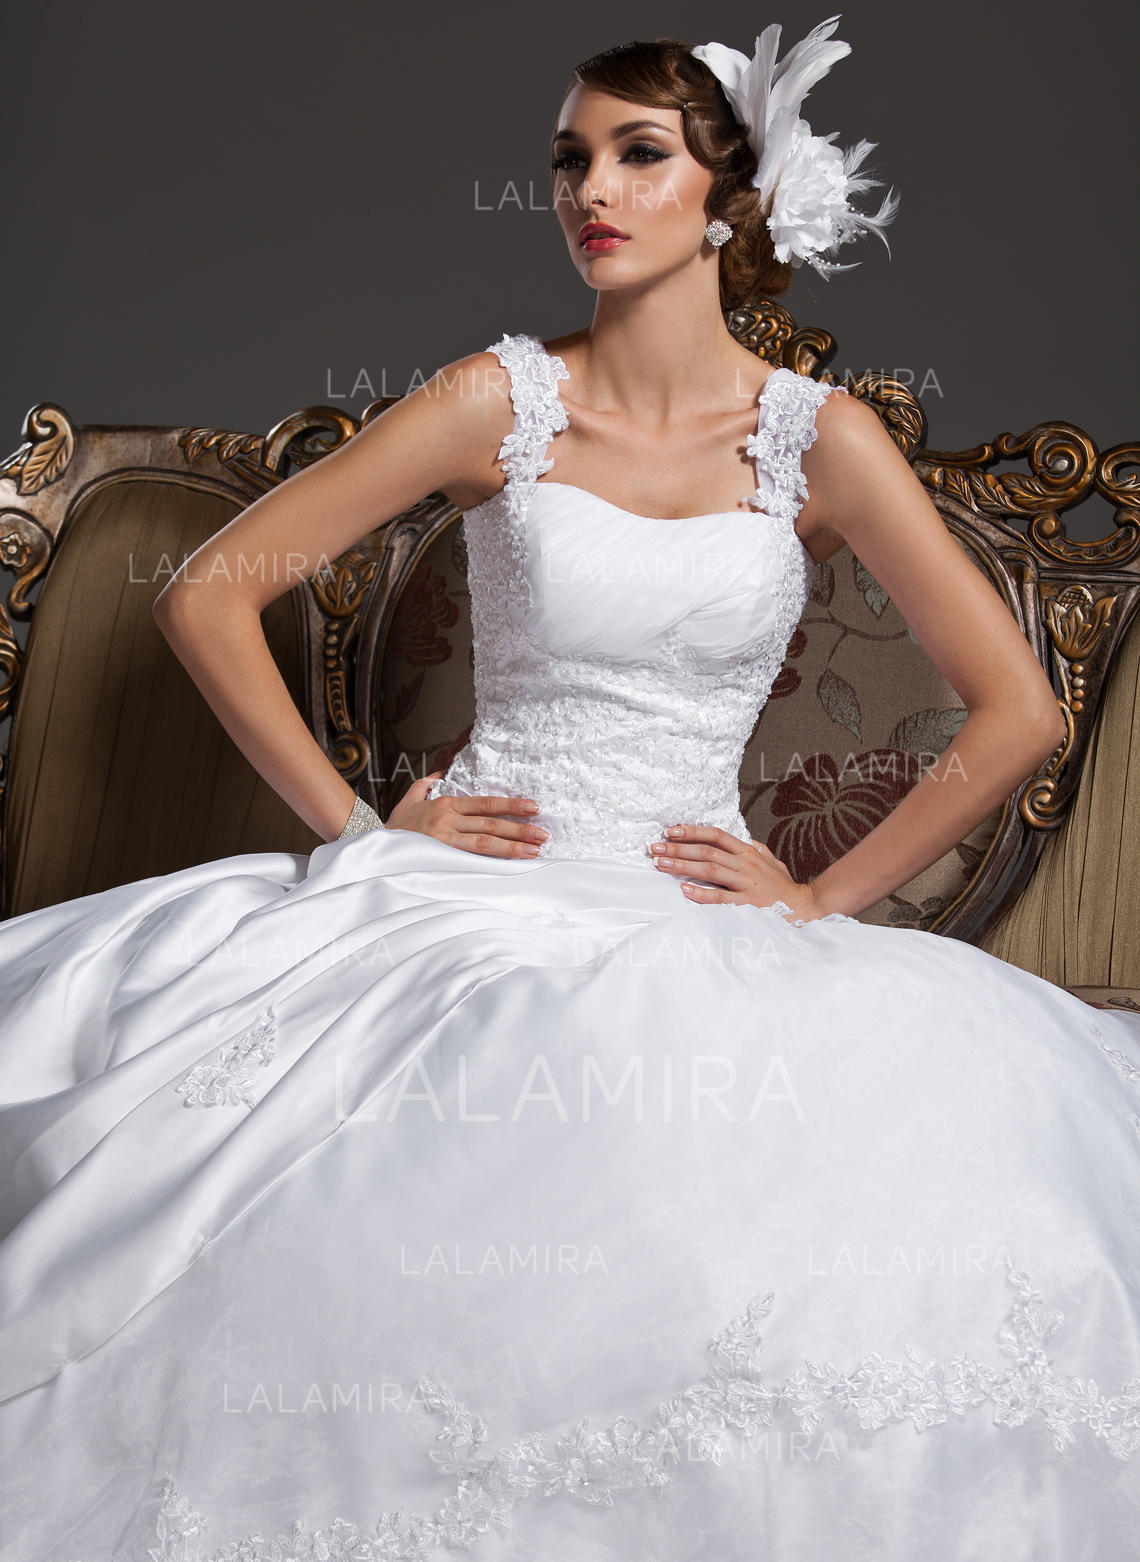 33a15647a49 Sweetheart General Plus - Ball-Gown Satin Organza Wedding Dresses  (002196839). Loading zoom